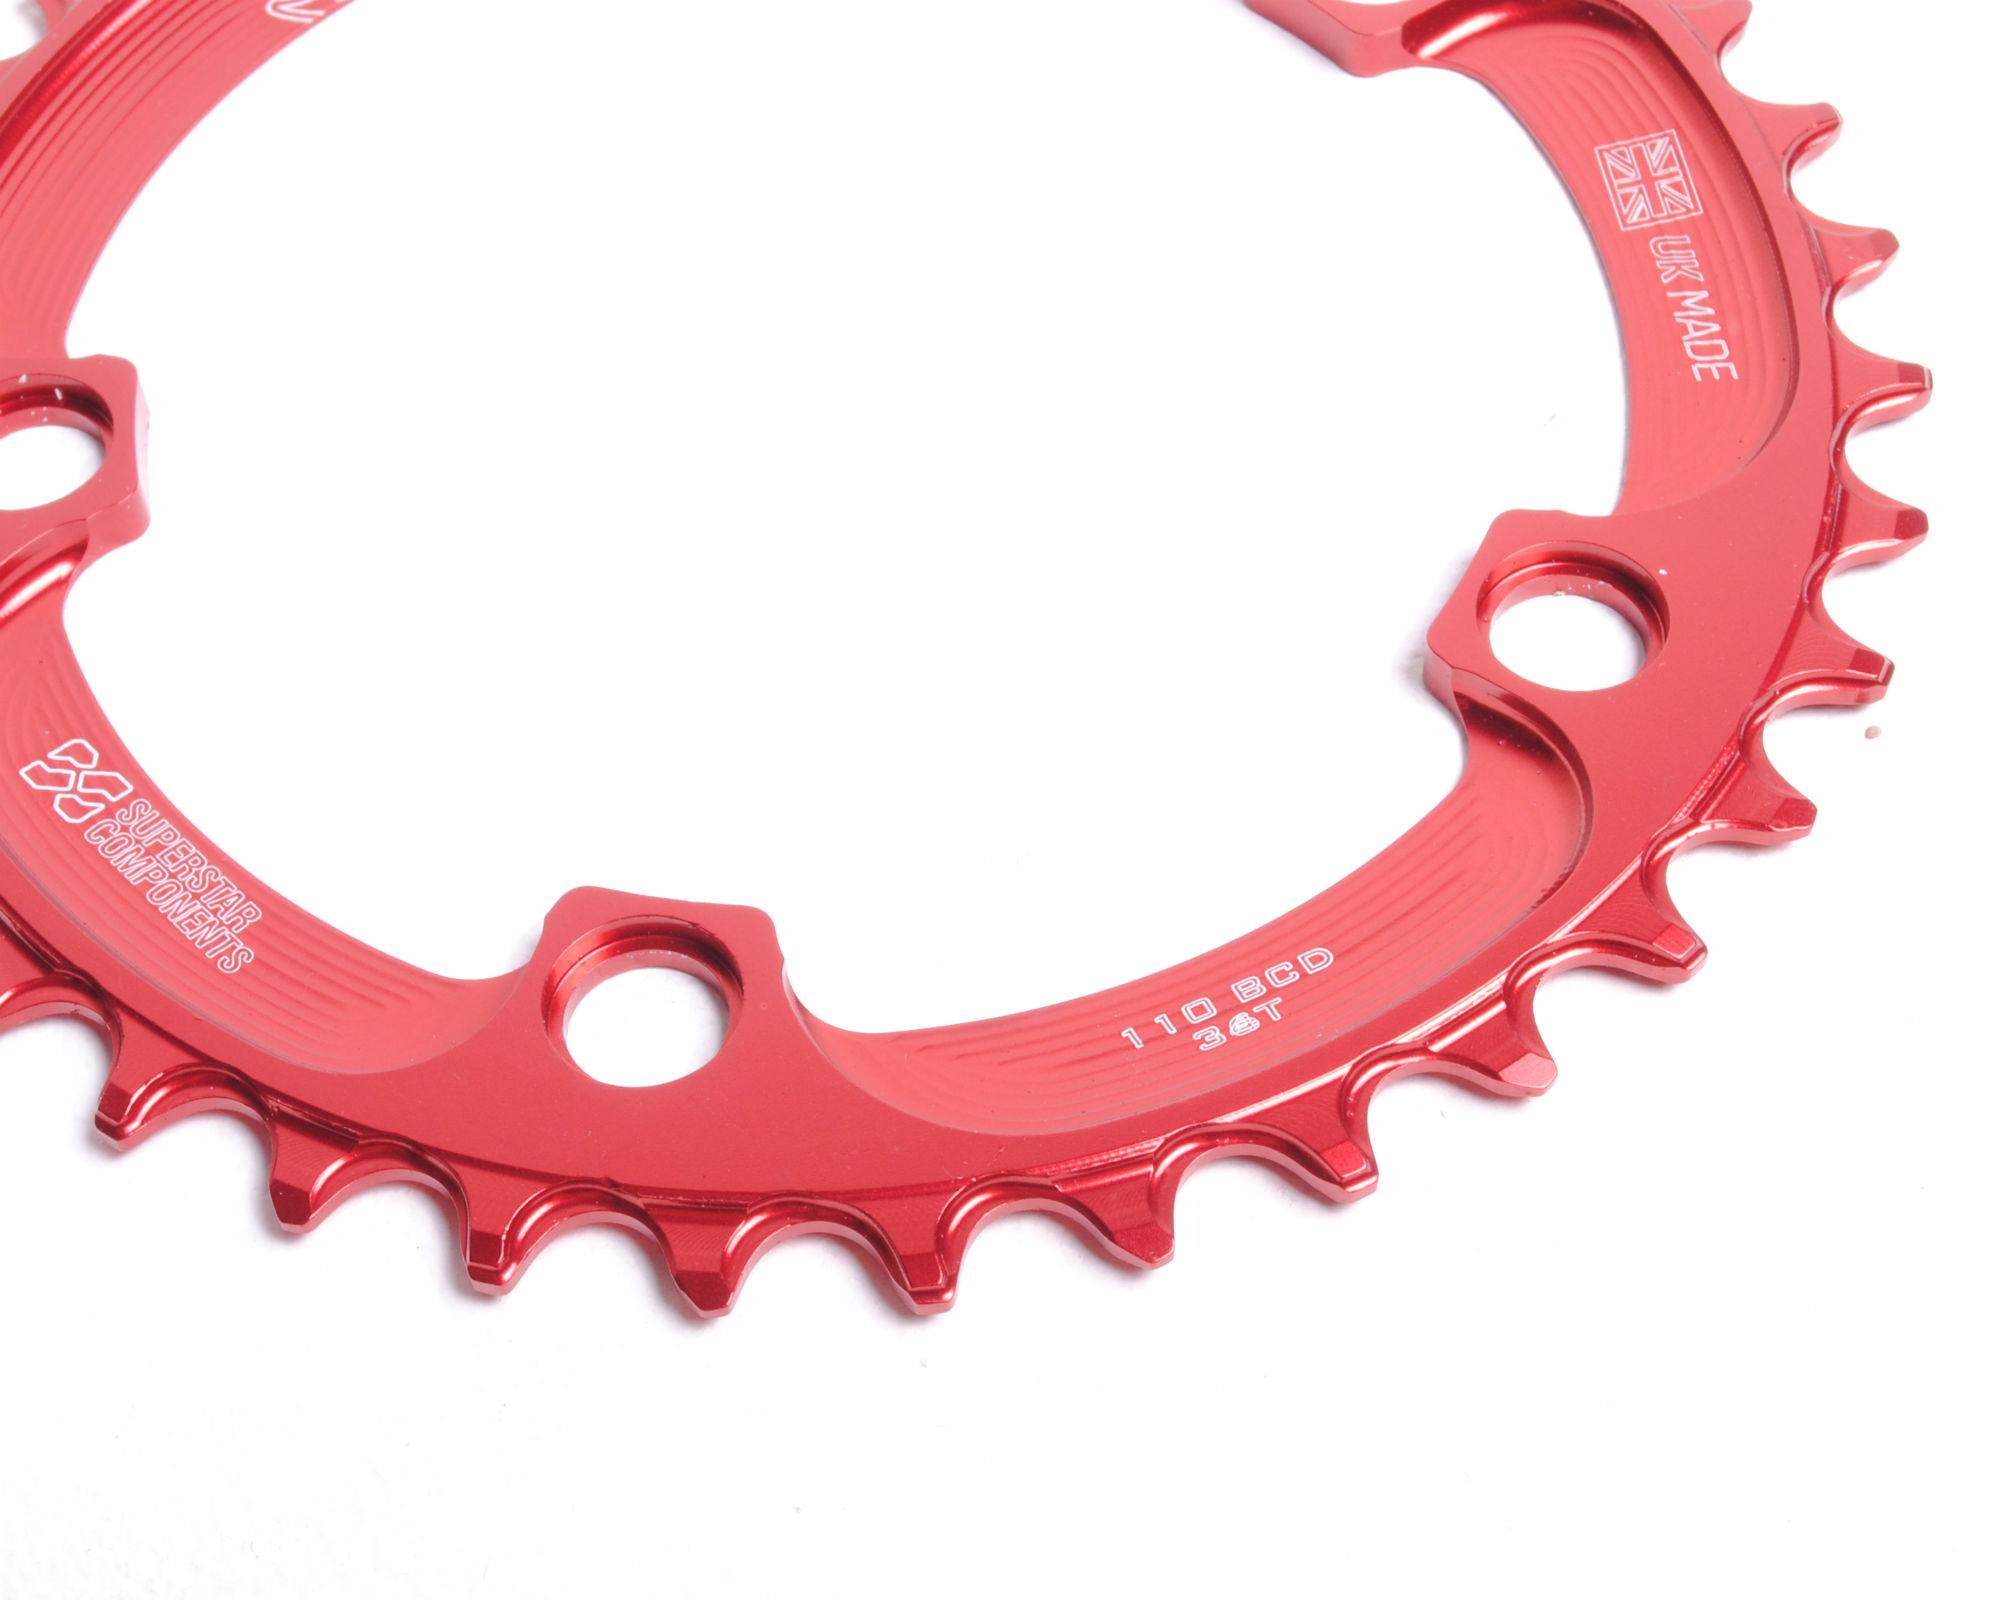 Raptor Chainring 110BCD - Narrow Wide - Superstar Components